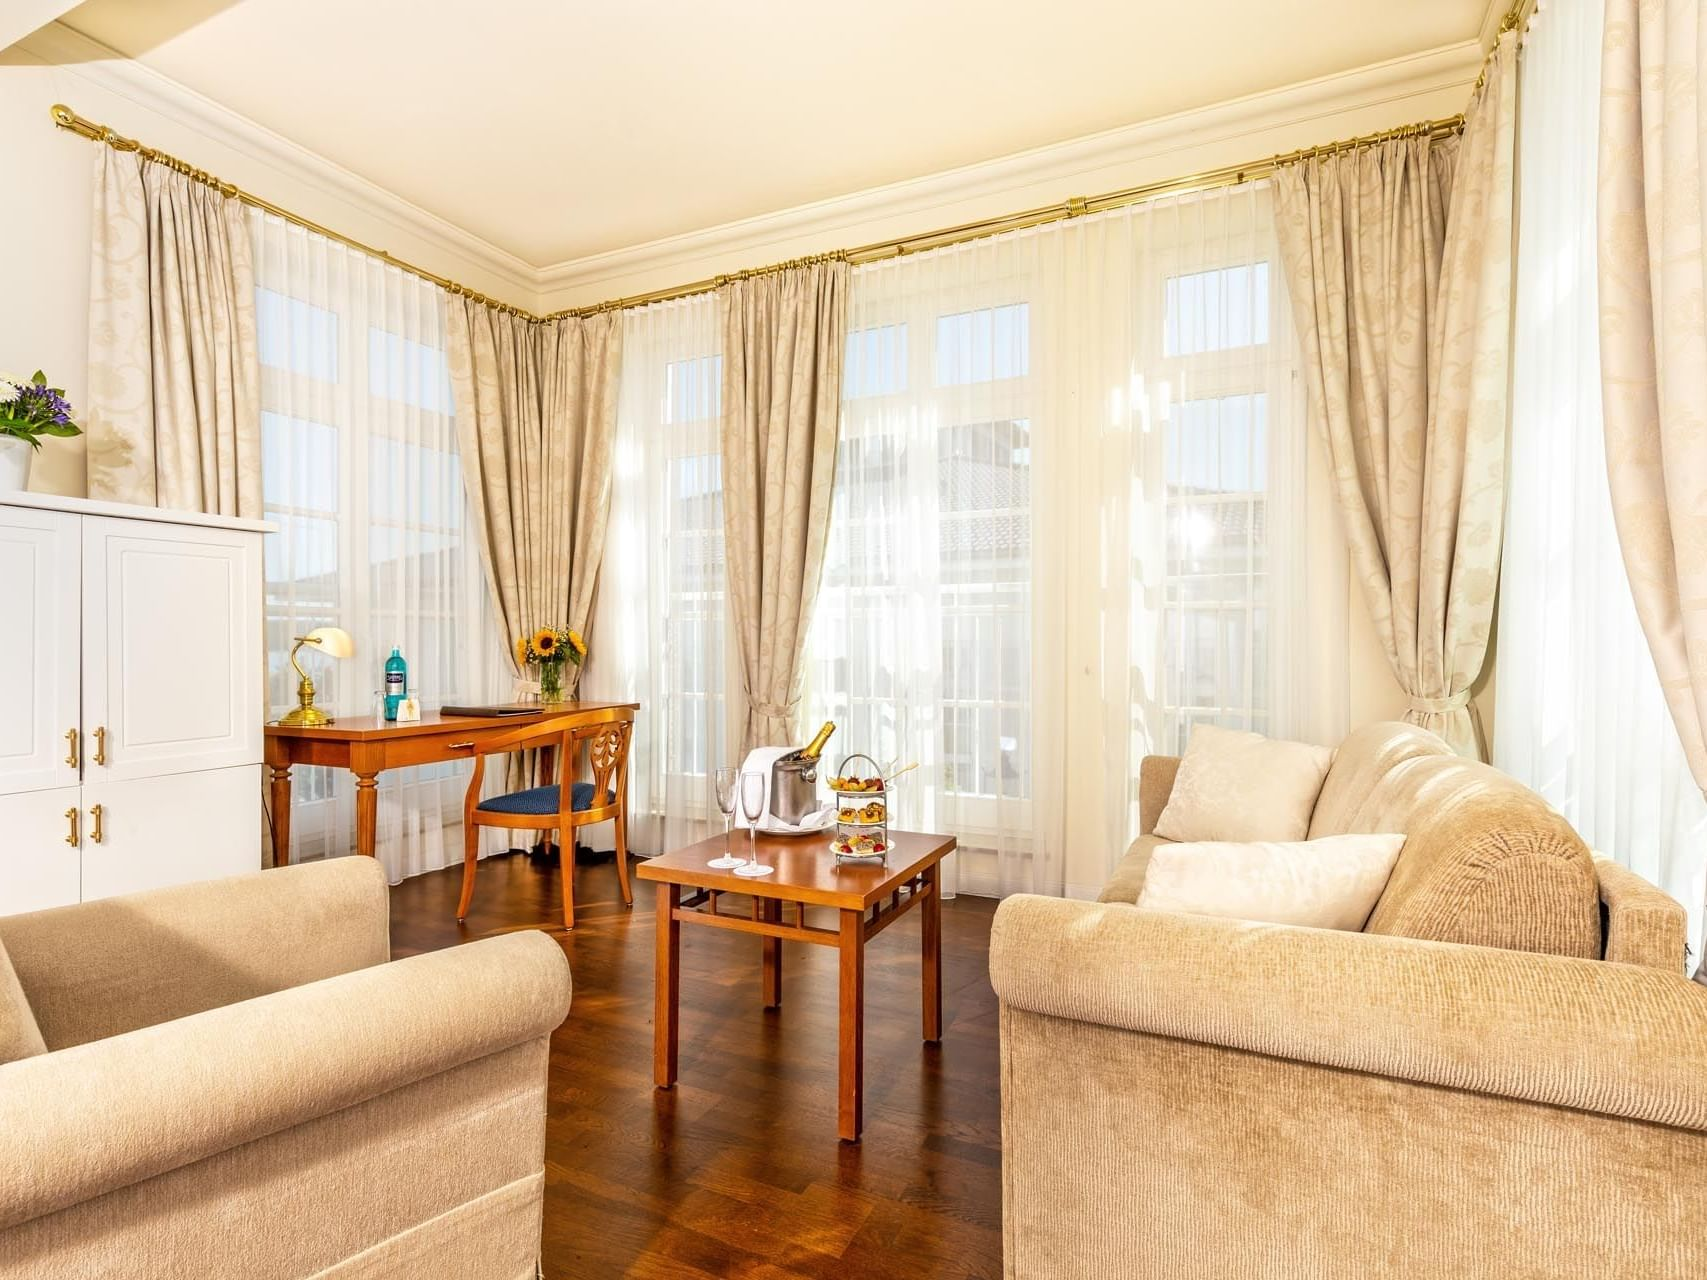 Two bedroom suite at Precise Resort Schwielowsee